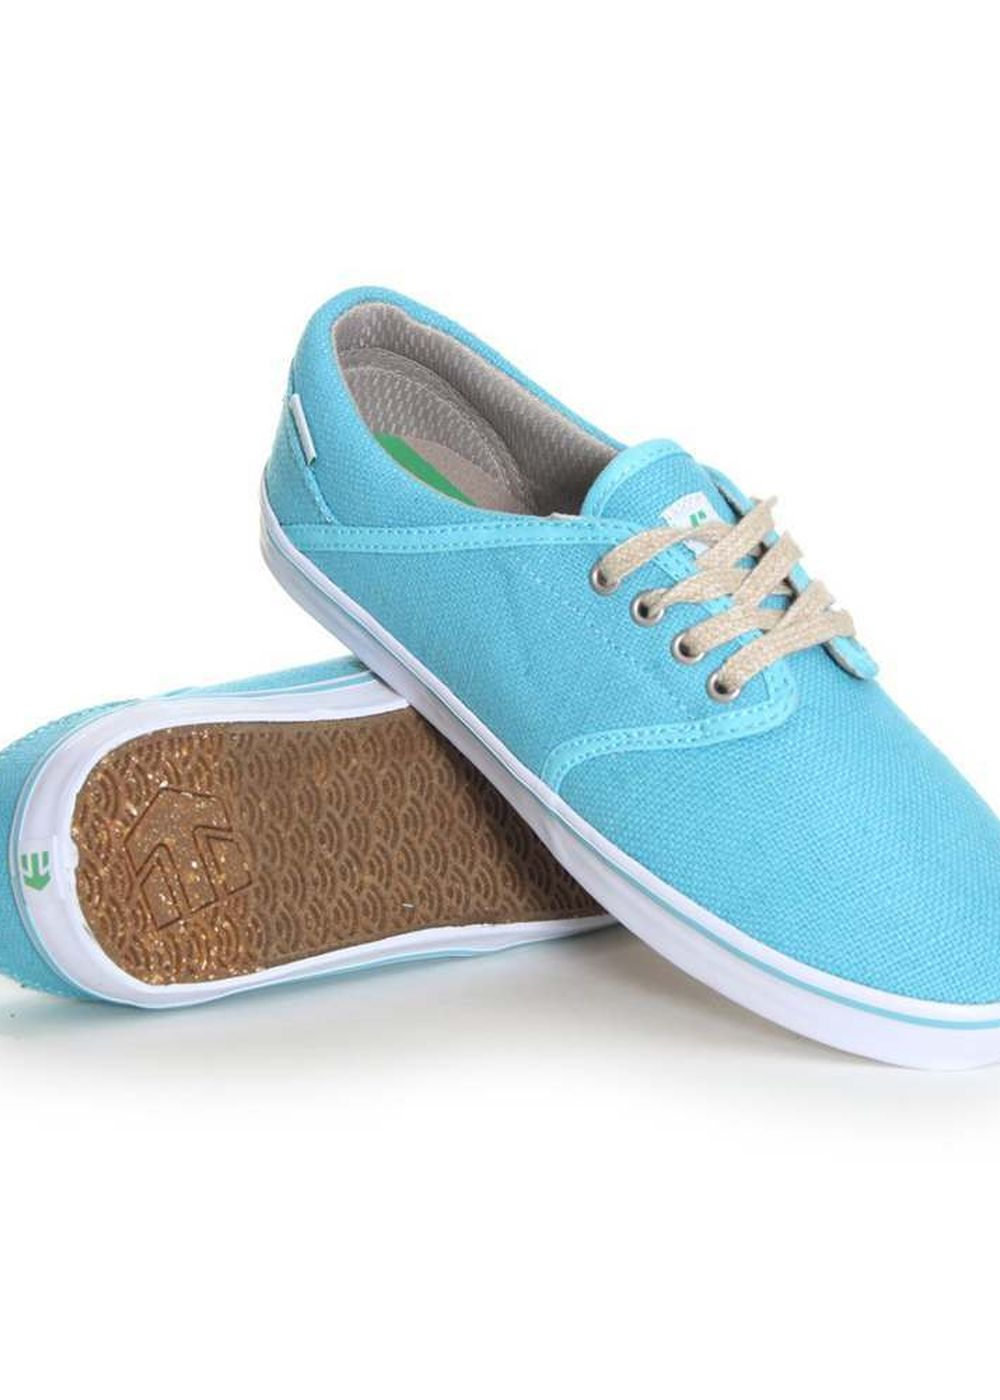 ETNIES CAPRICE ECO SHOES Blue/White